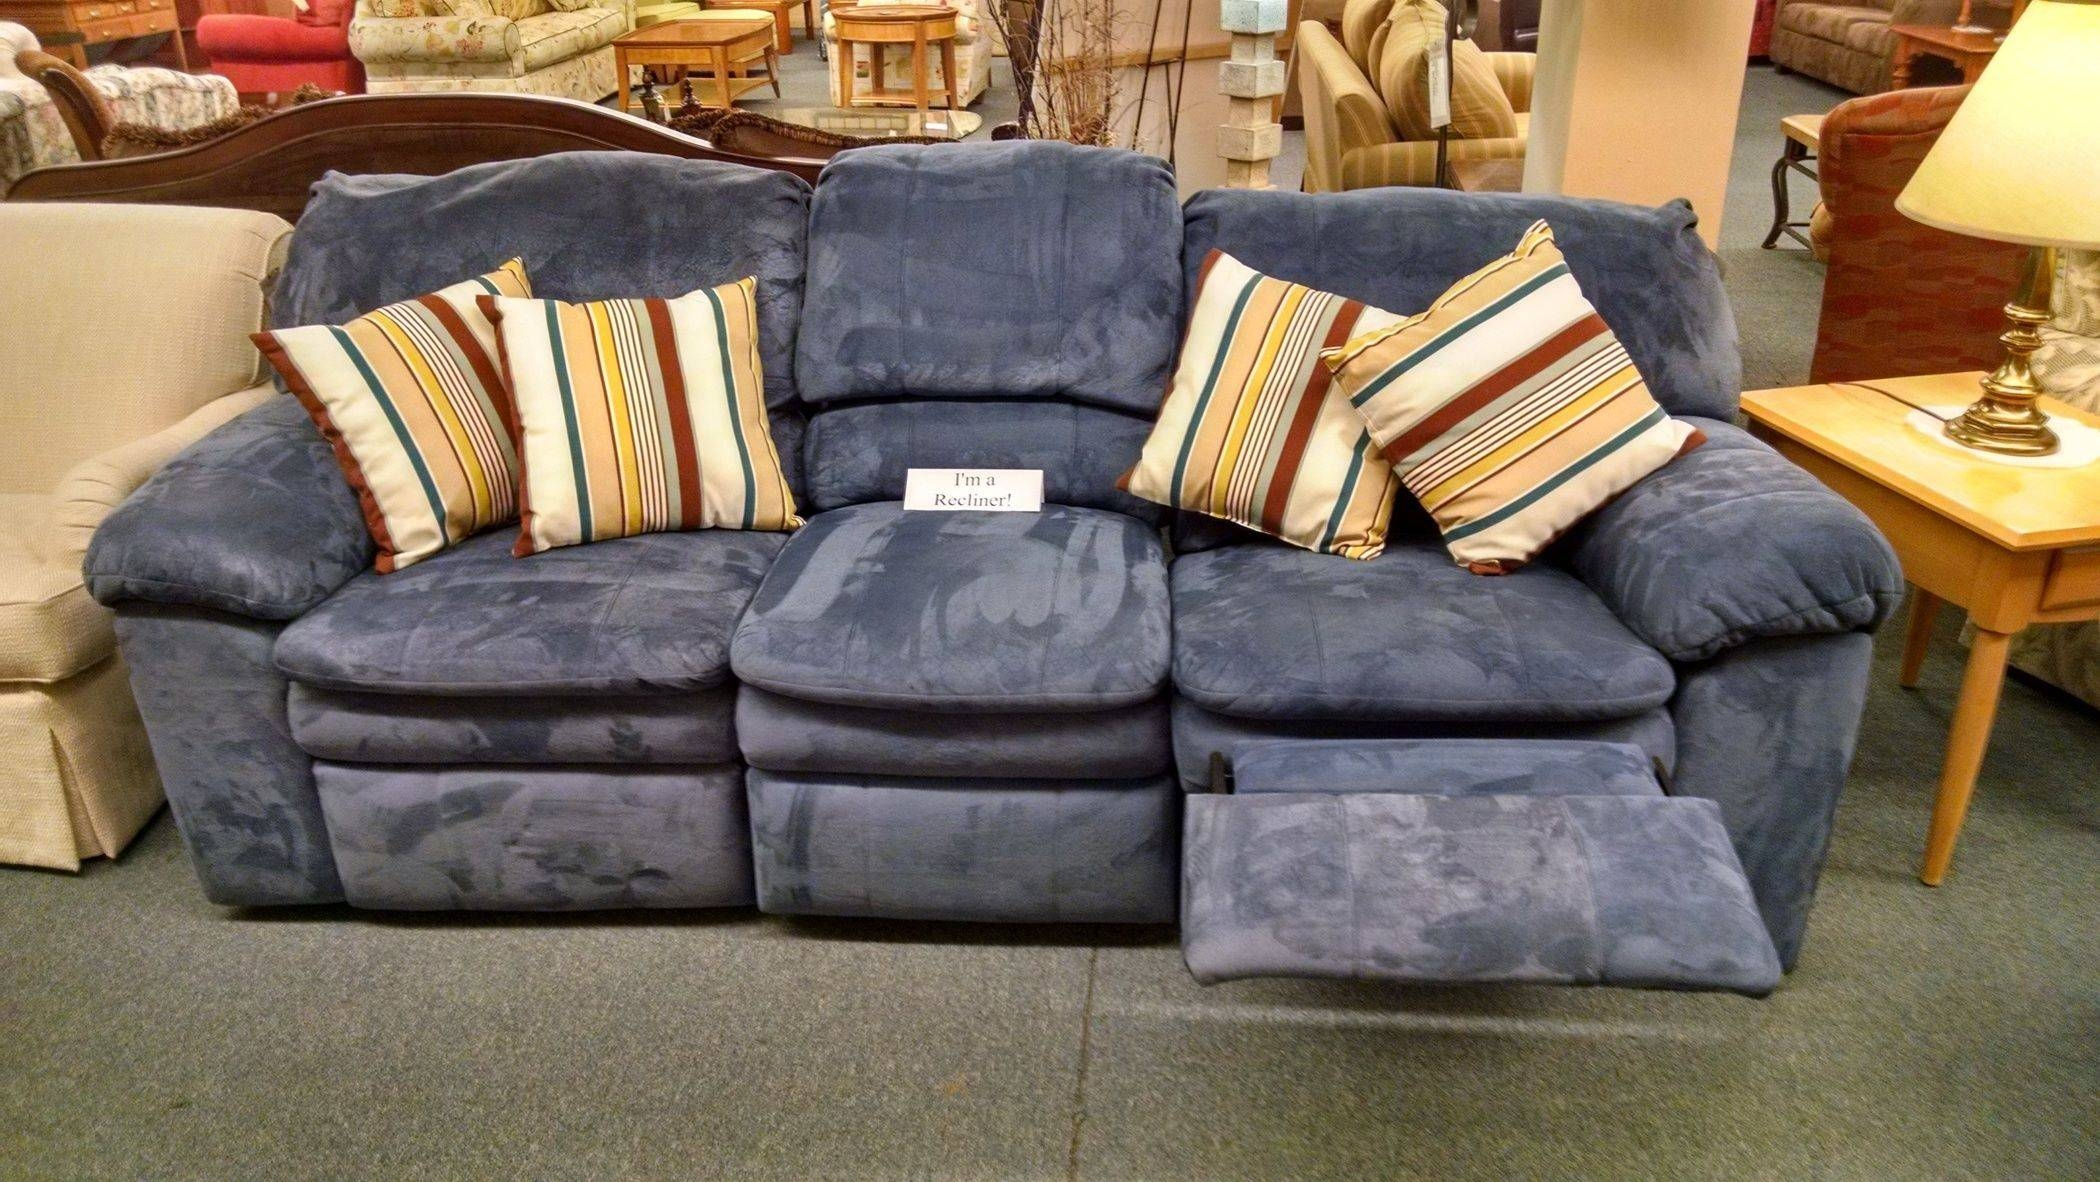 Berkline Blue Reclining Sofa | Delmarva Furniture Consignment intended for Berkline Reclining Sofas (Image 5 of 15)